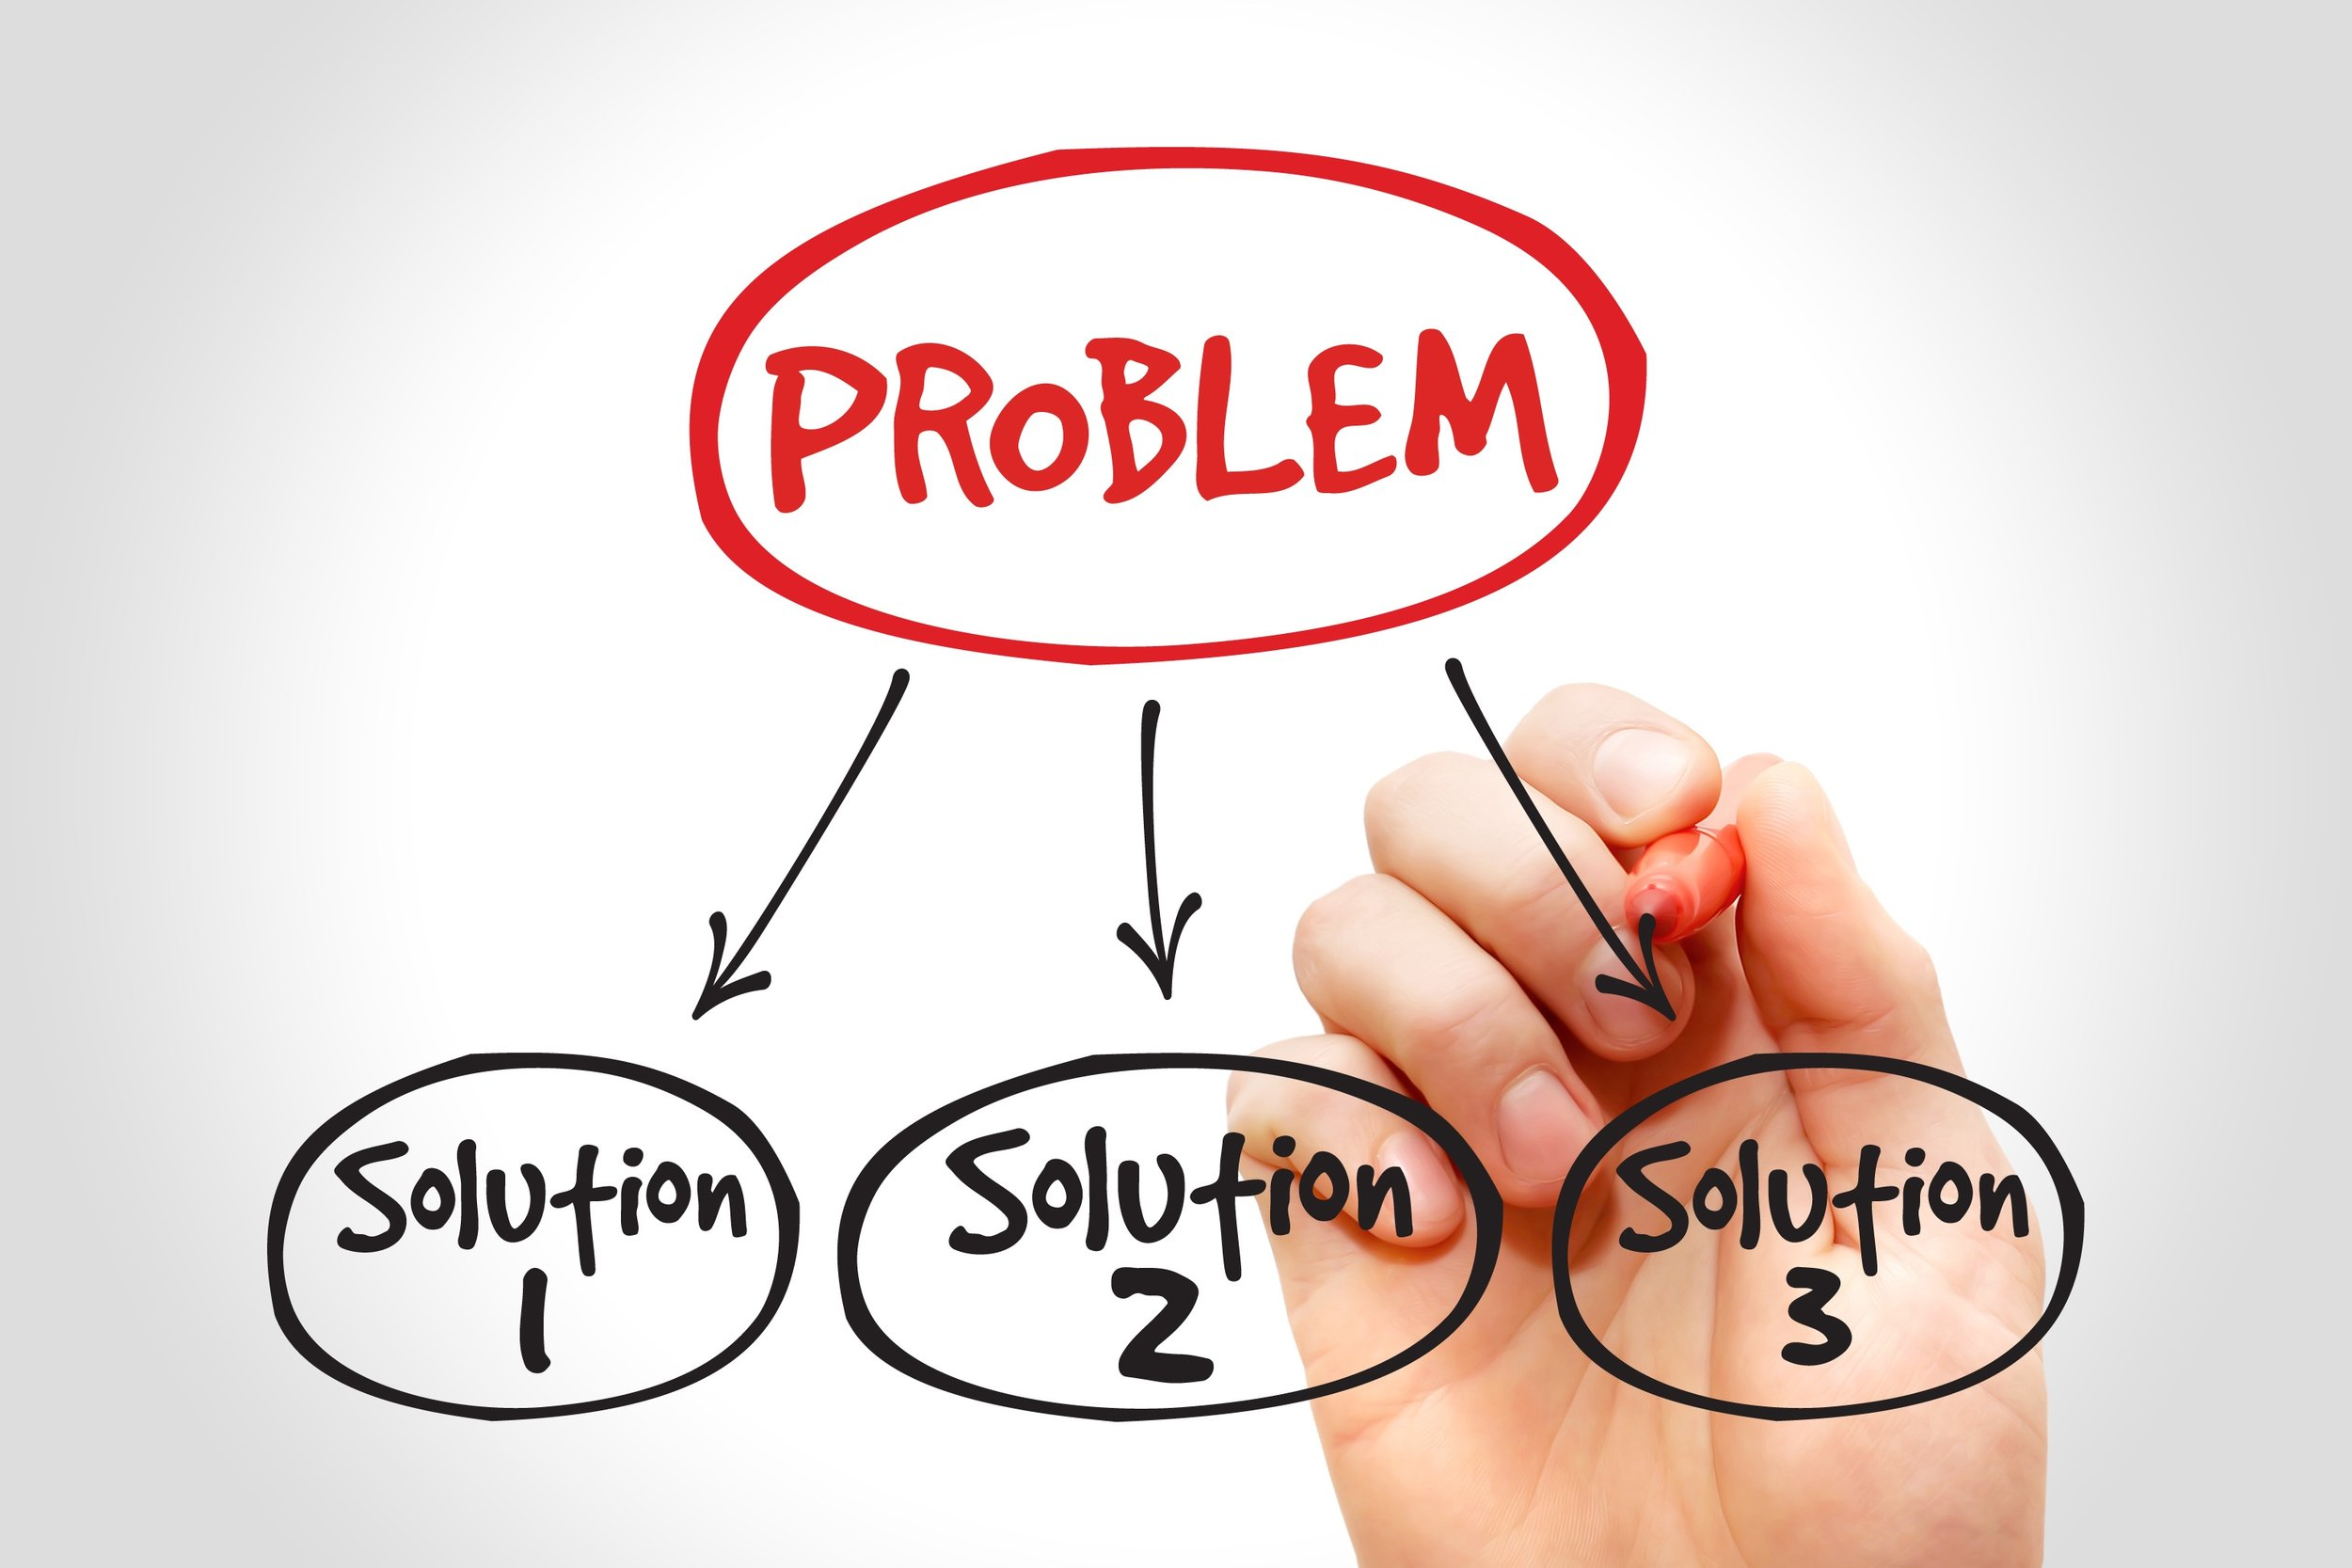 85373833-dizain-problem-solving-strategies.jpg